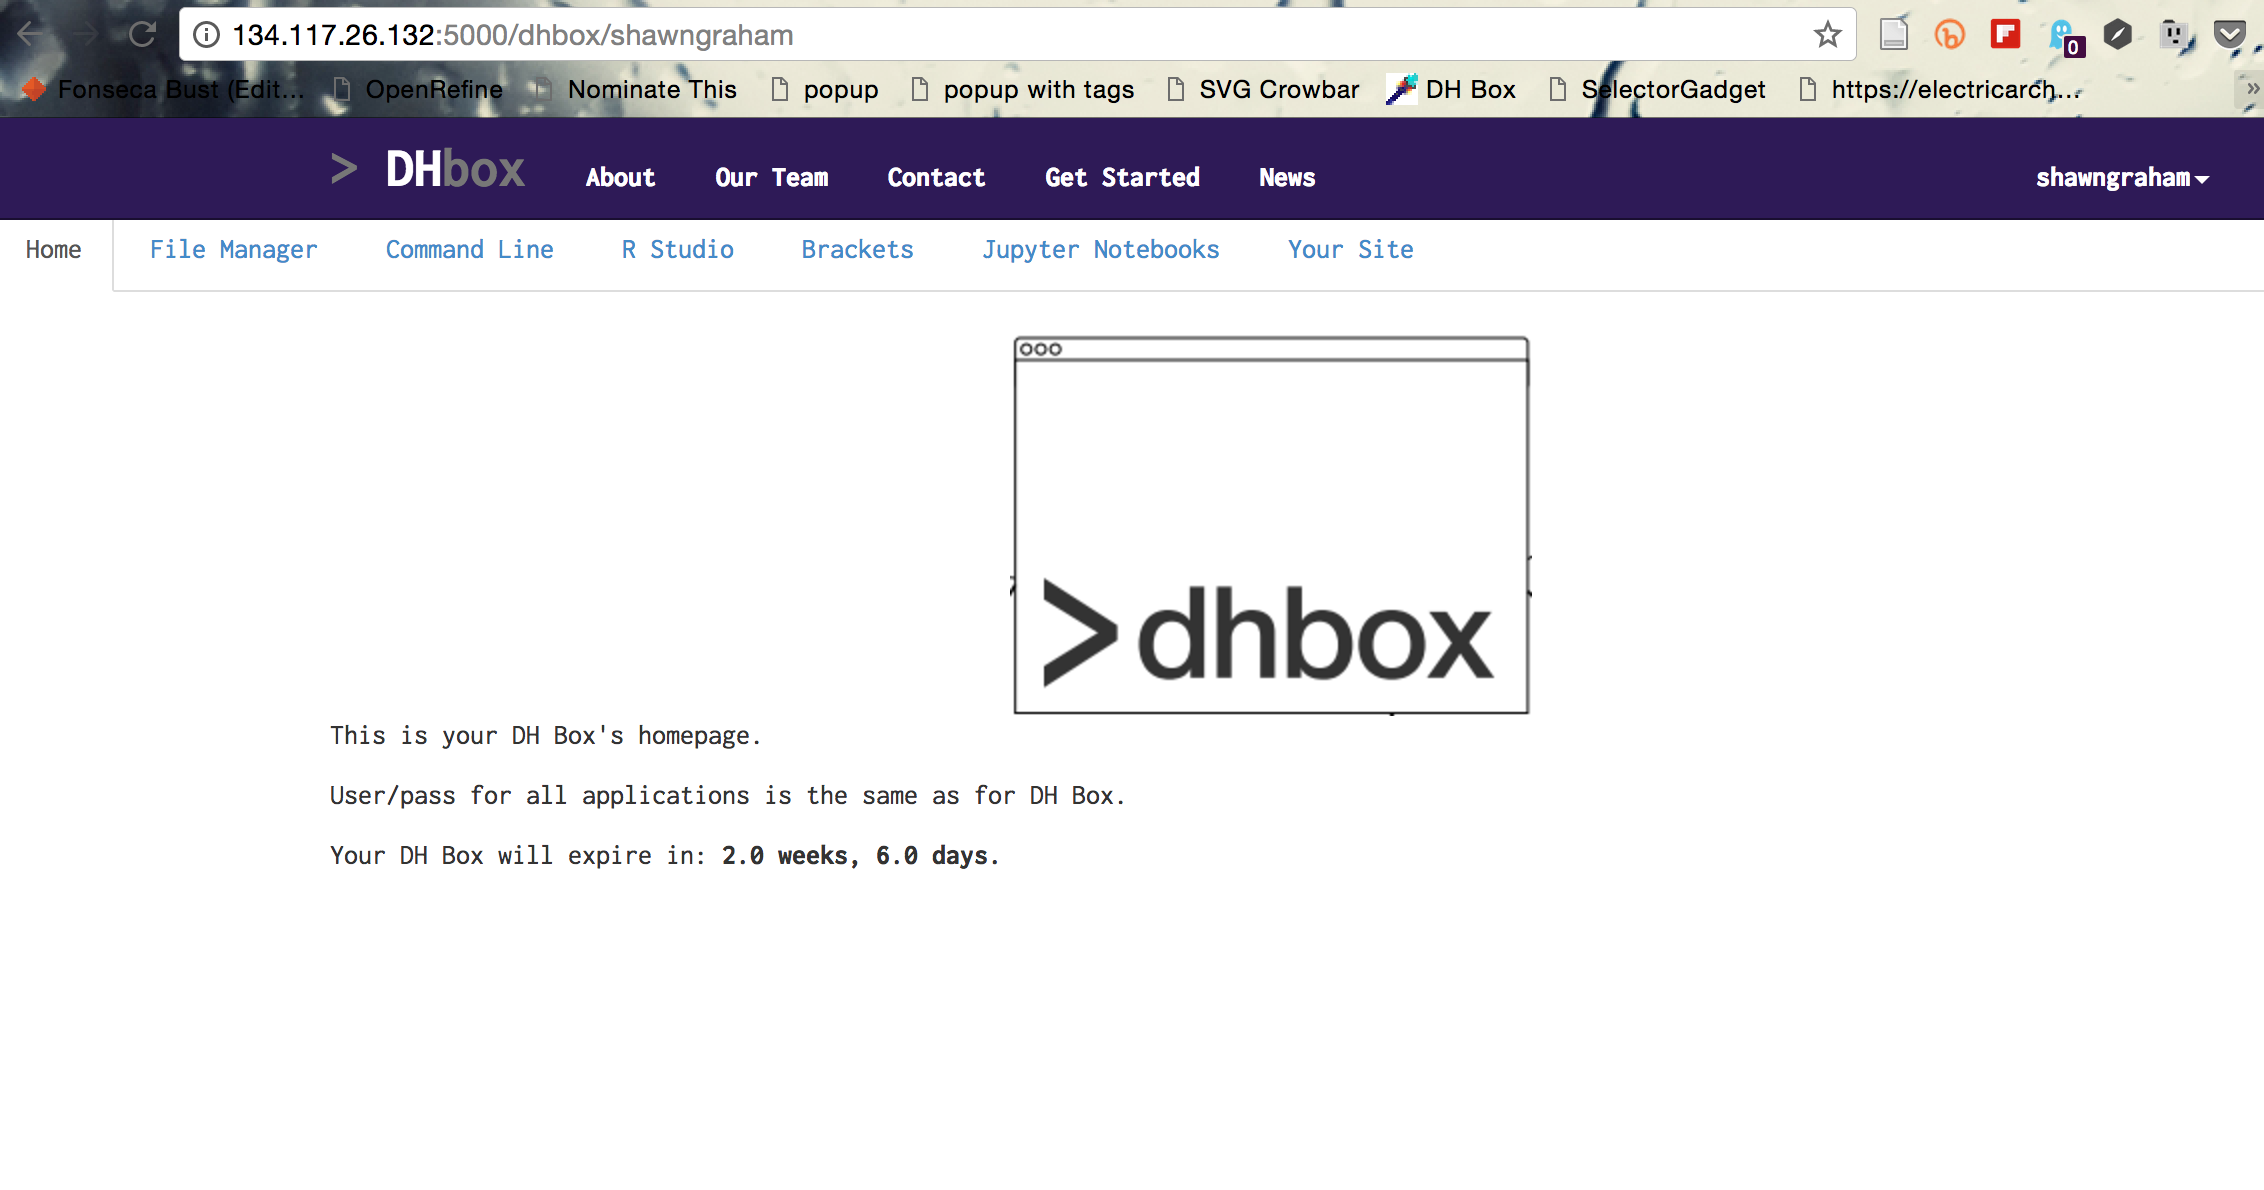 The applications in DHBox